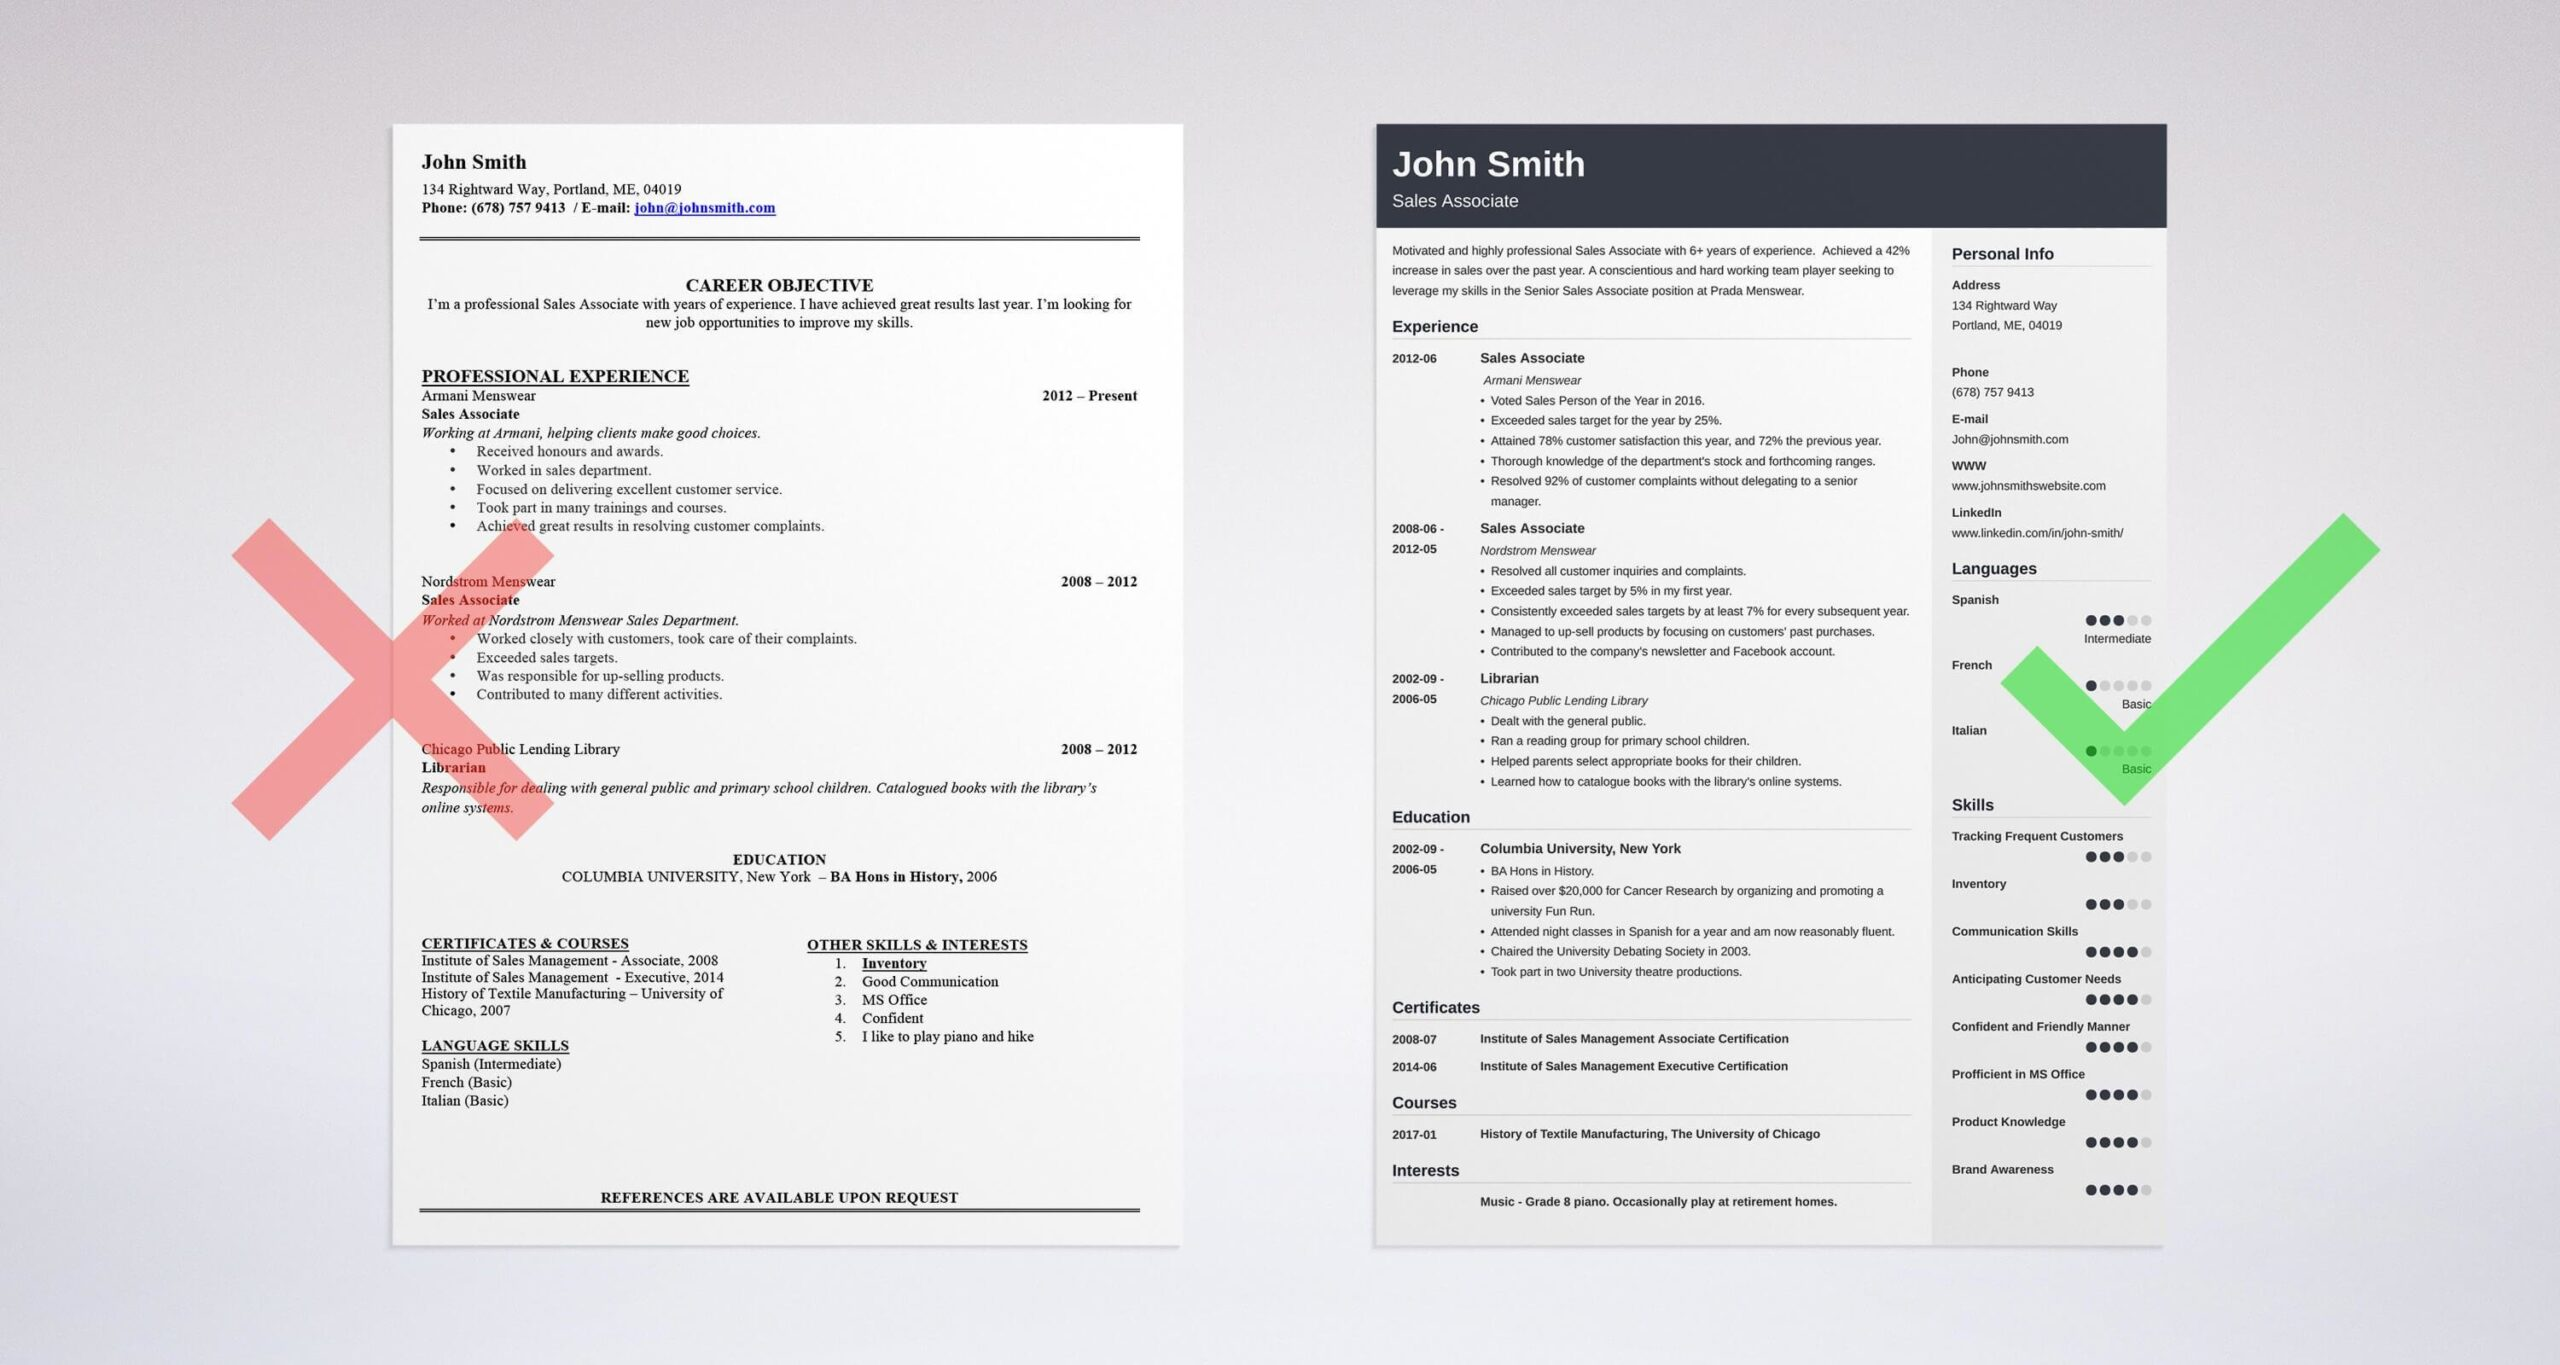 of hobbies and interests for resume cv examples that look good on summary template cubic Resume Interests That Look Good On A Resume